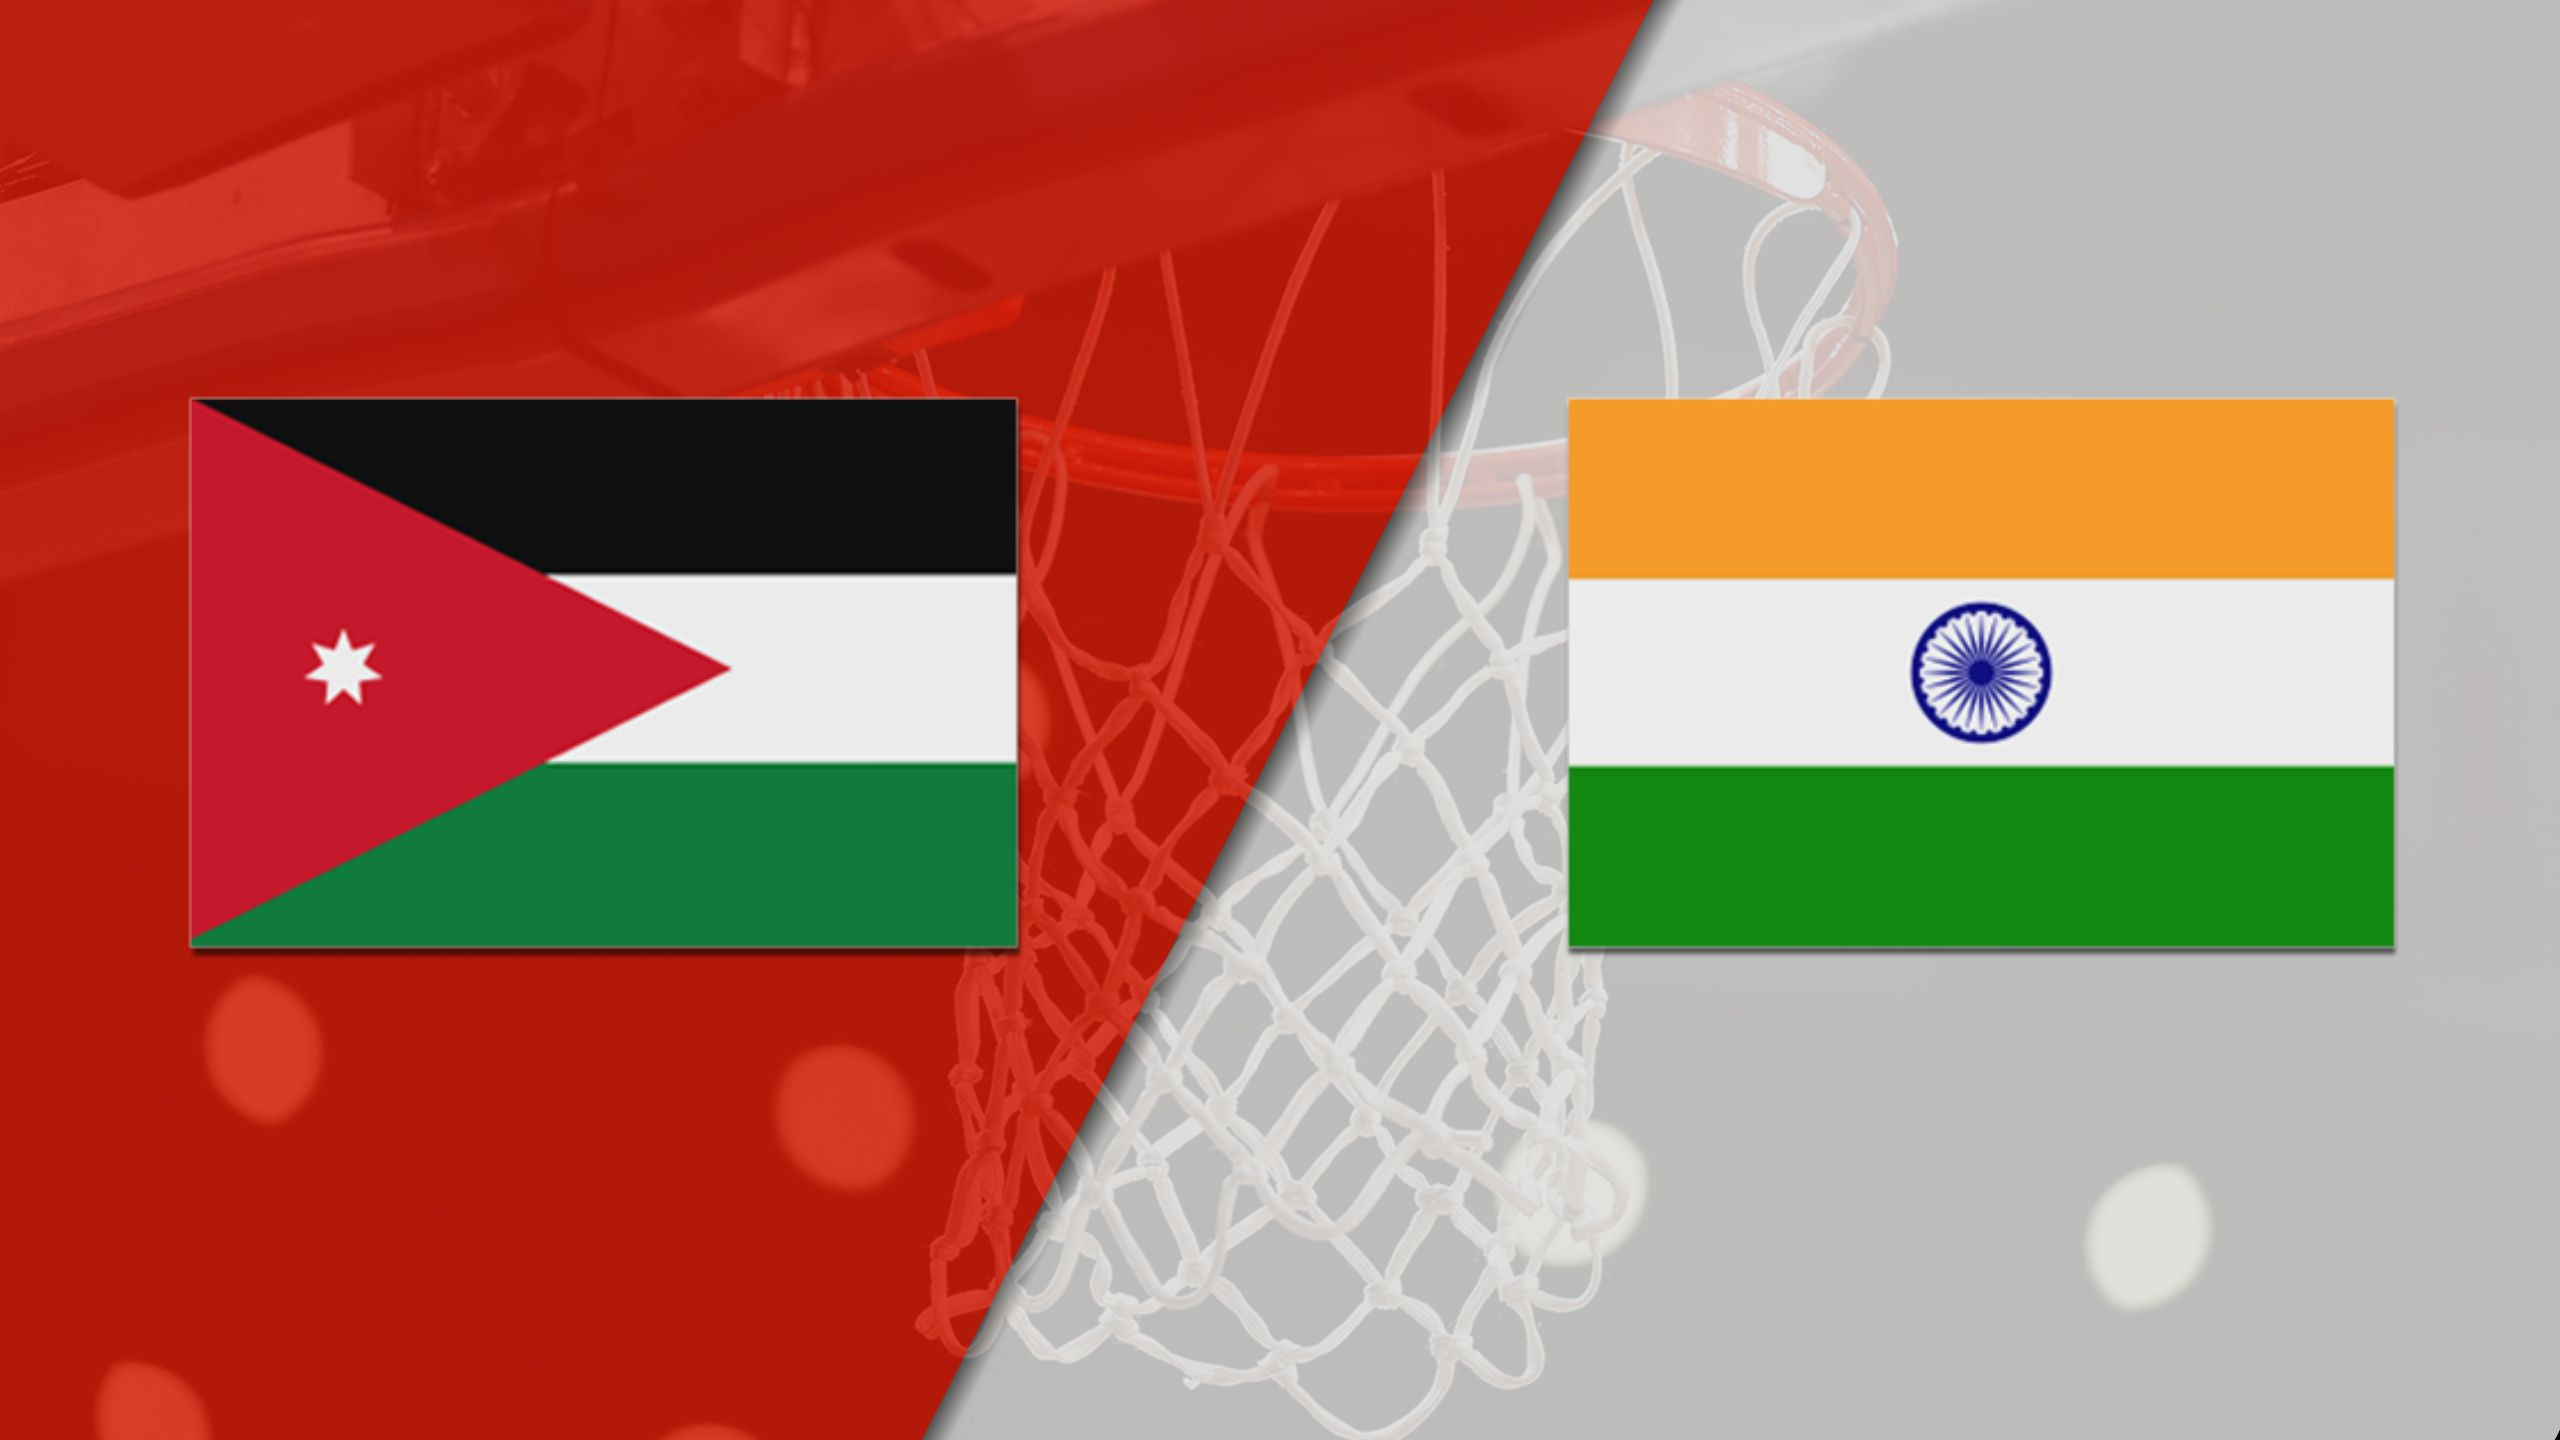 Jordan vs. India (FIBA World Cup 2019 Qualifier)